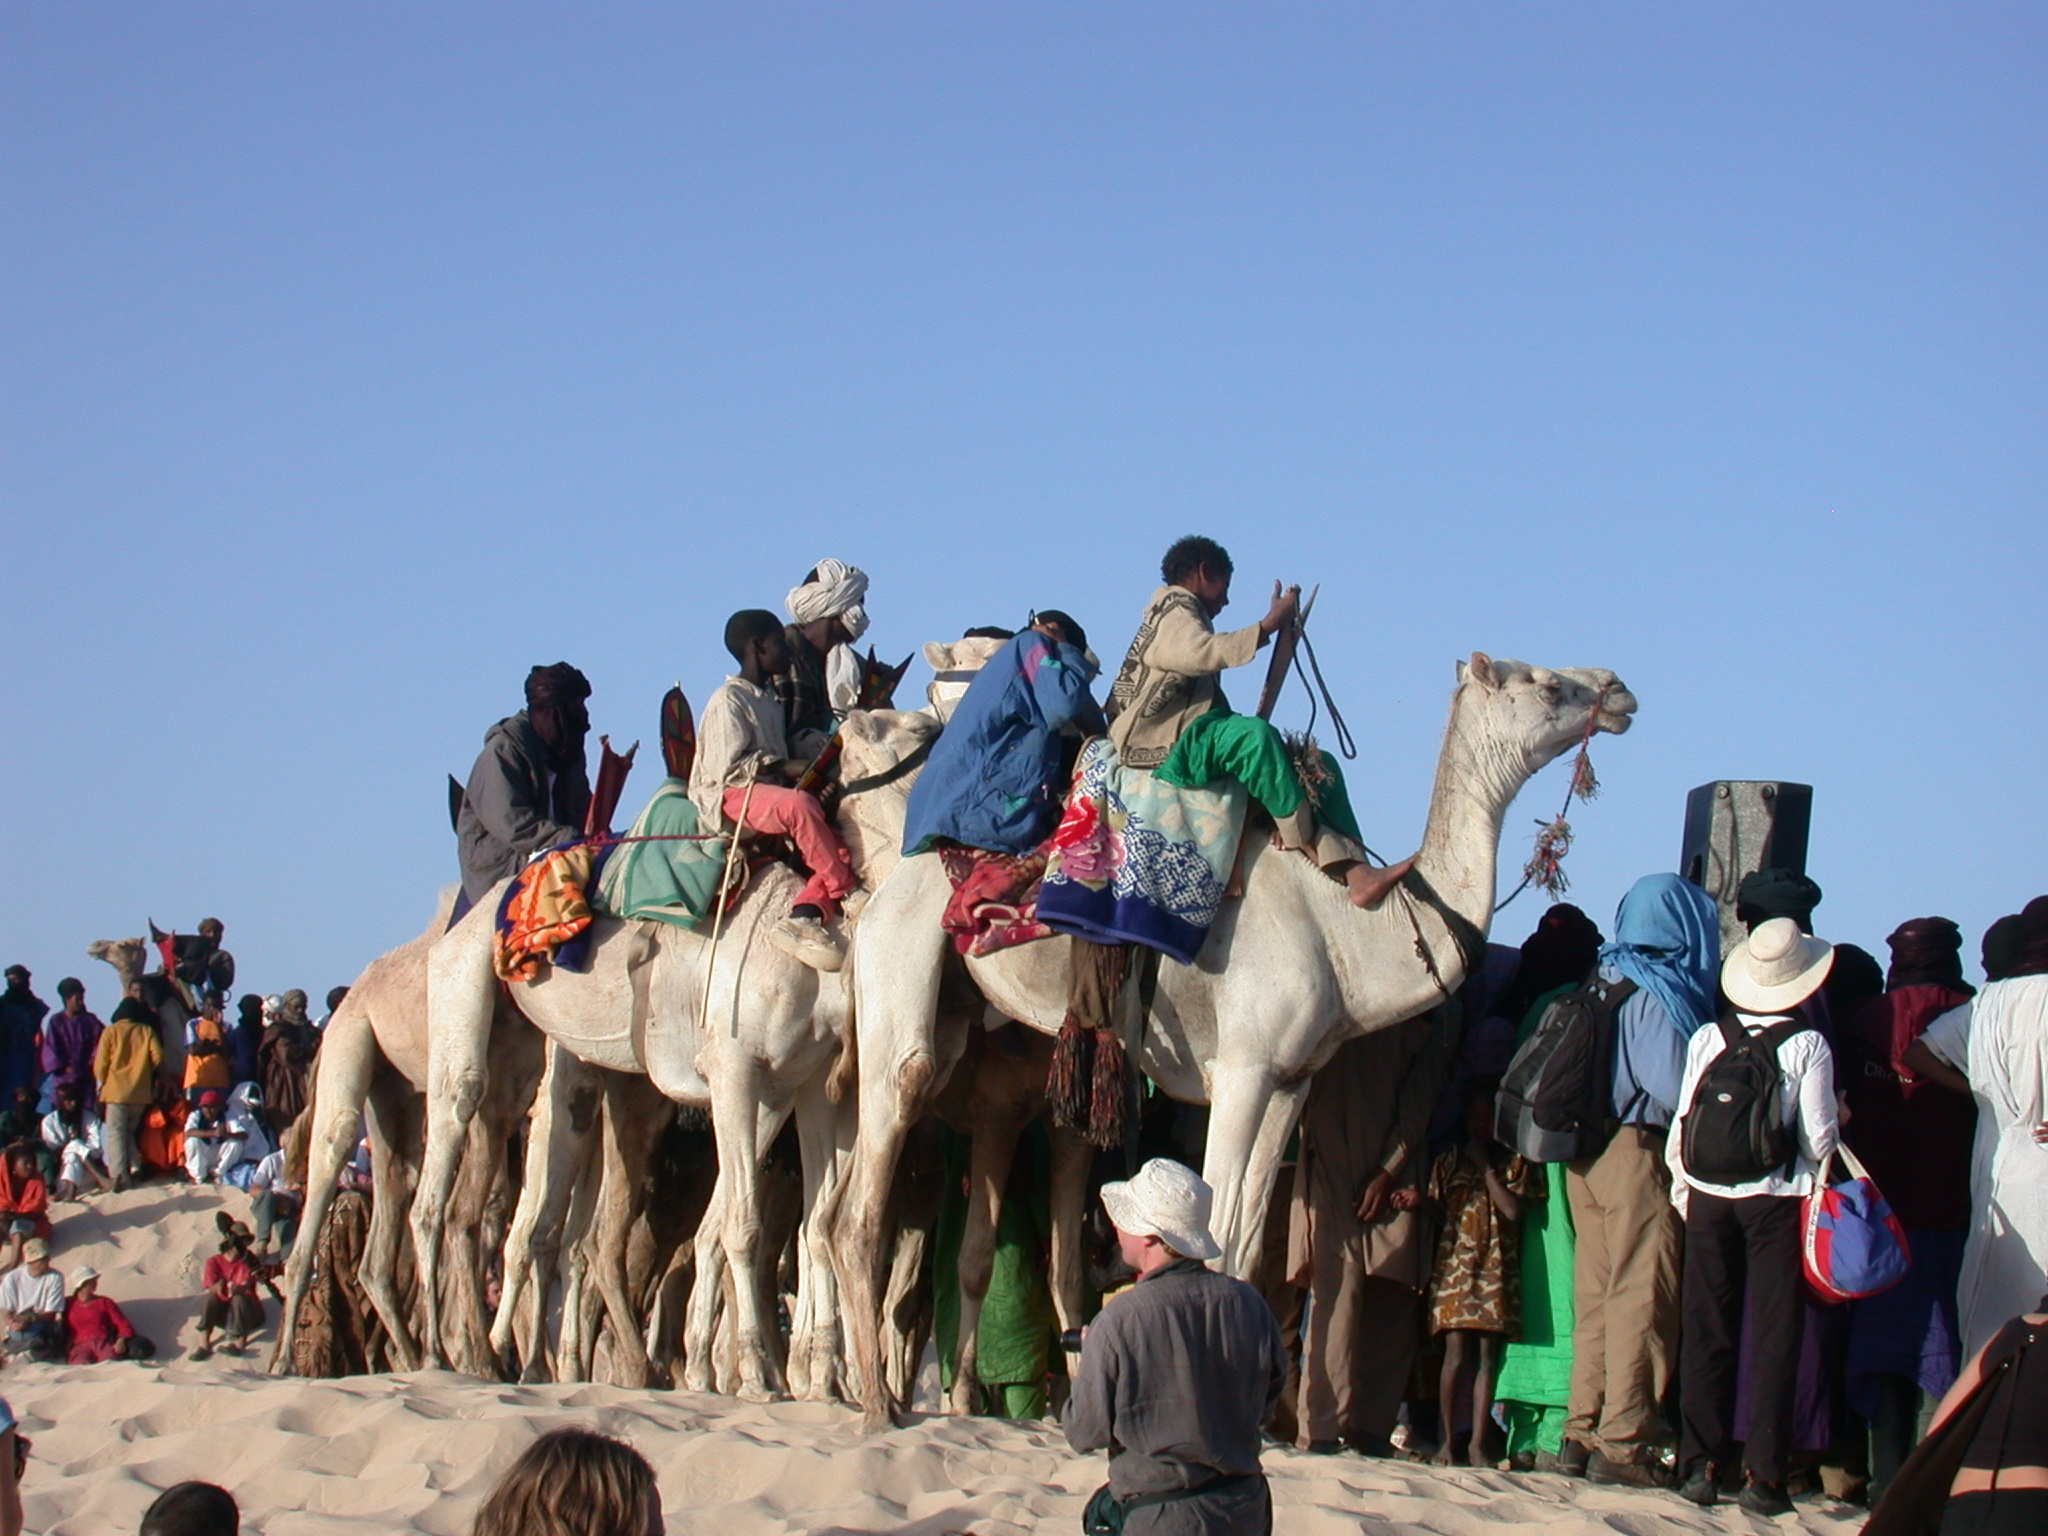 Preparing for Camel Race, Festival in the Desert, Essakane, Mali